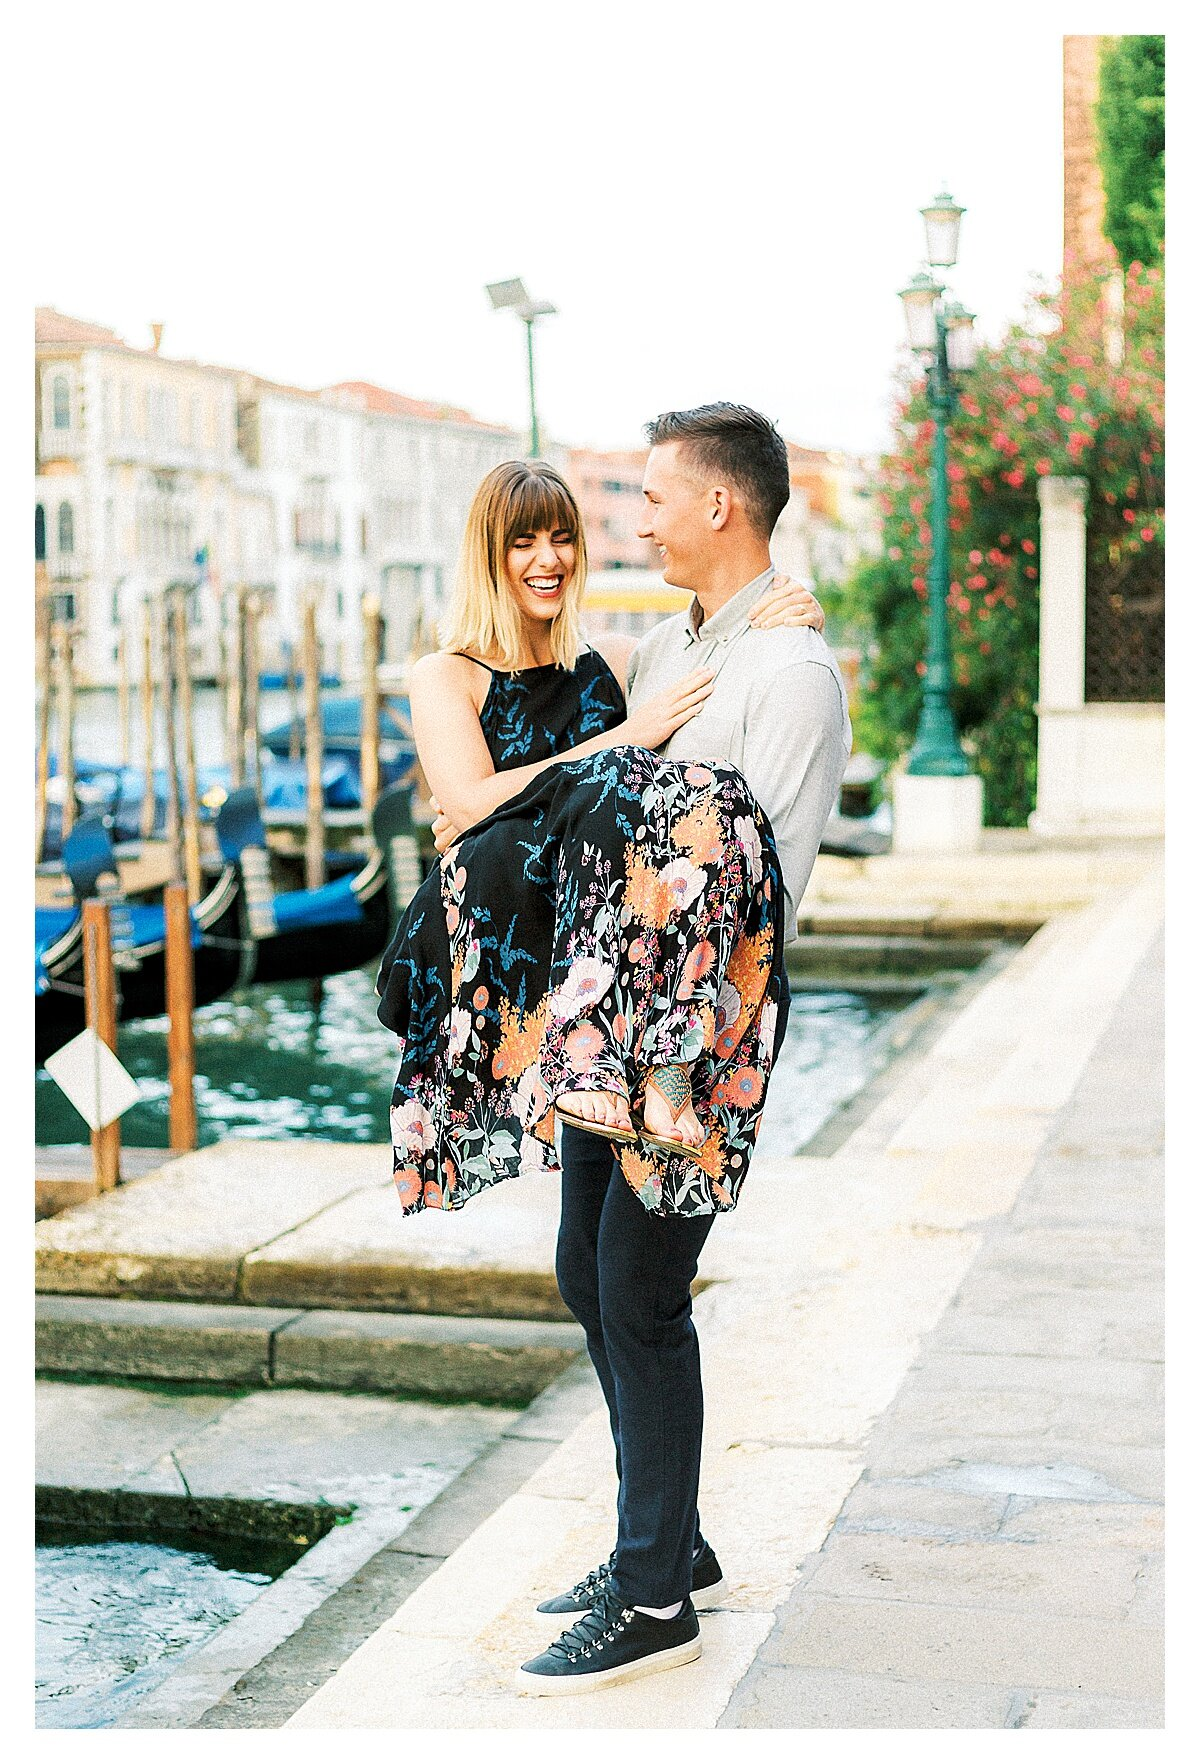 VENICE-COUPLE-PHOTOSHOOT-film-fuji-400h-stefano-degirmenci_0810.jpg